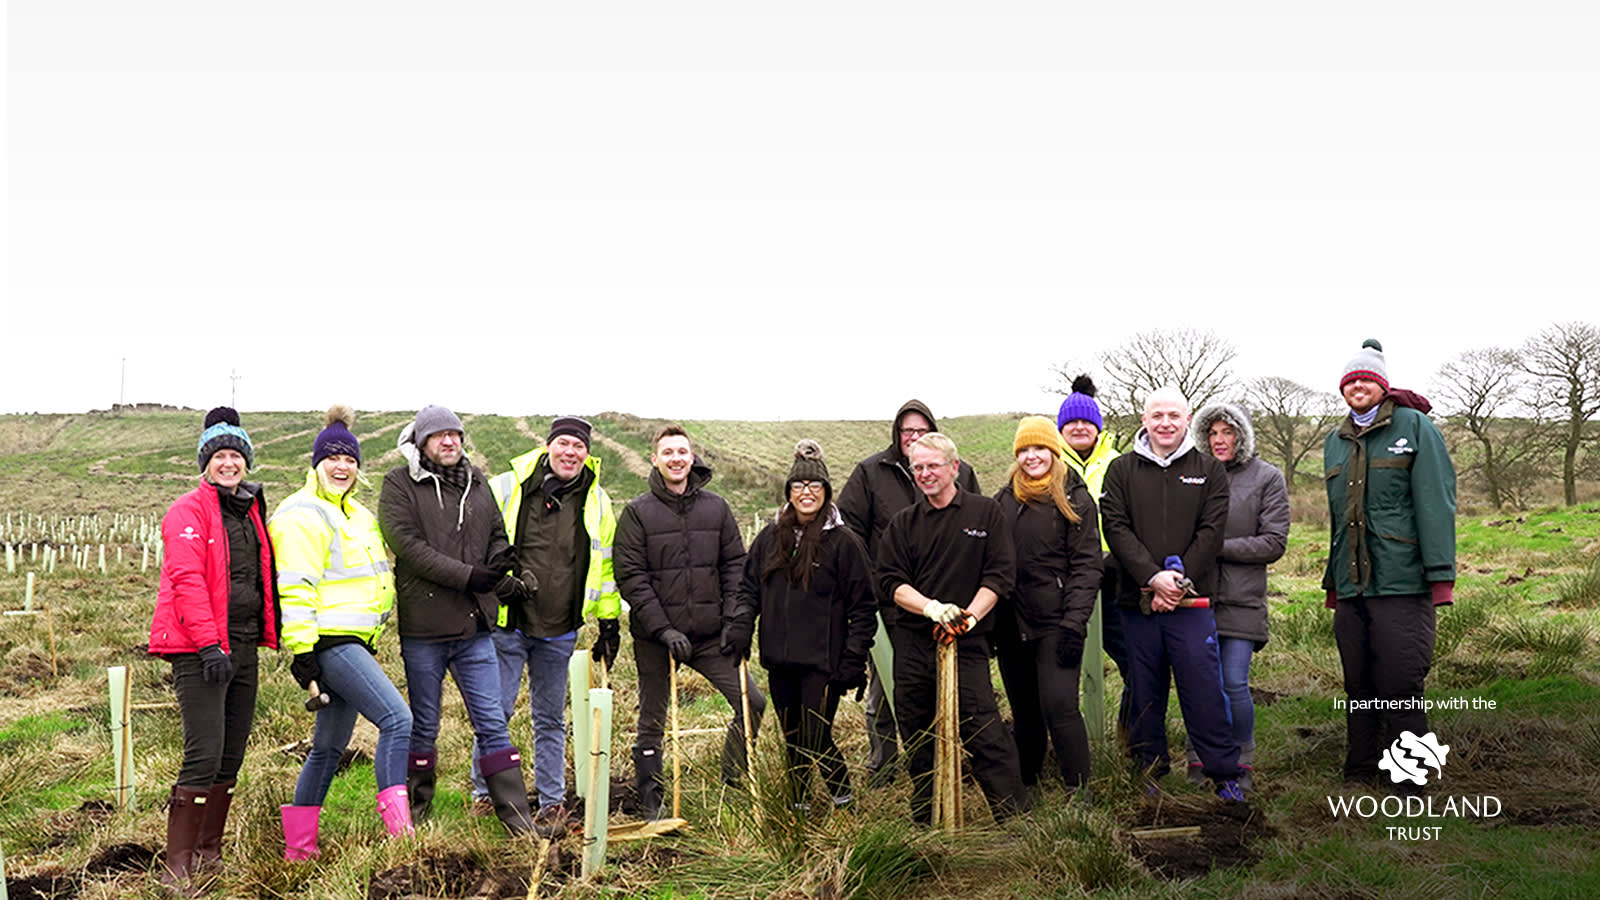 Planting Trees with the Woodland Trust